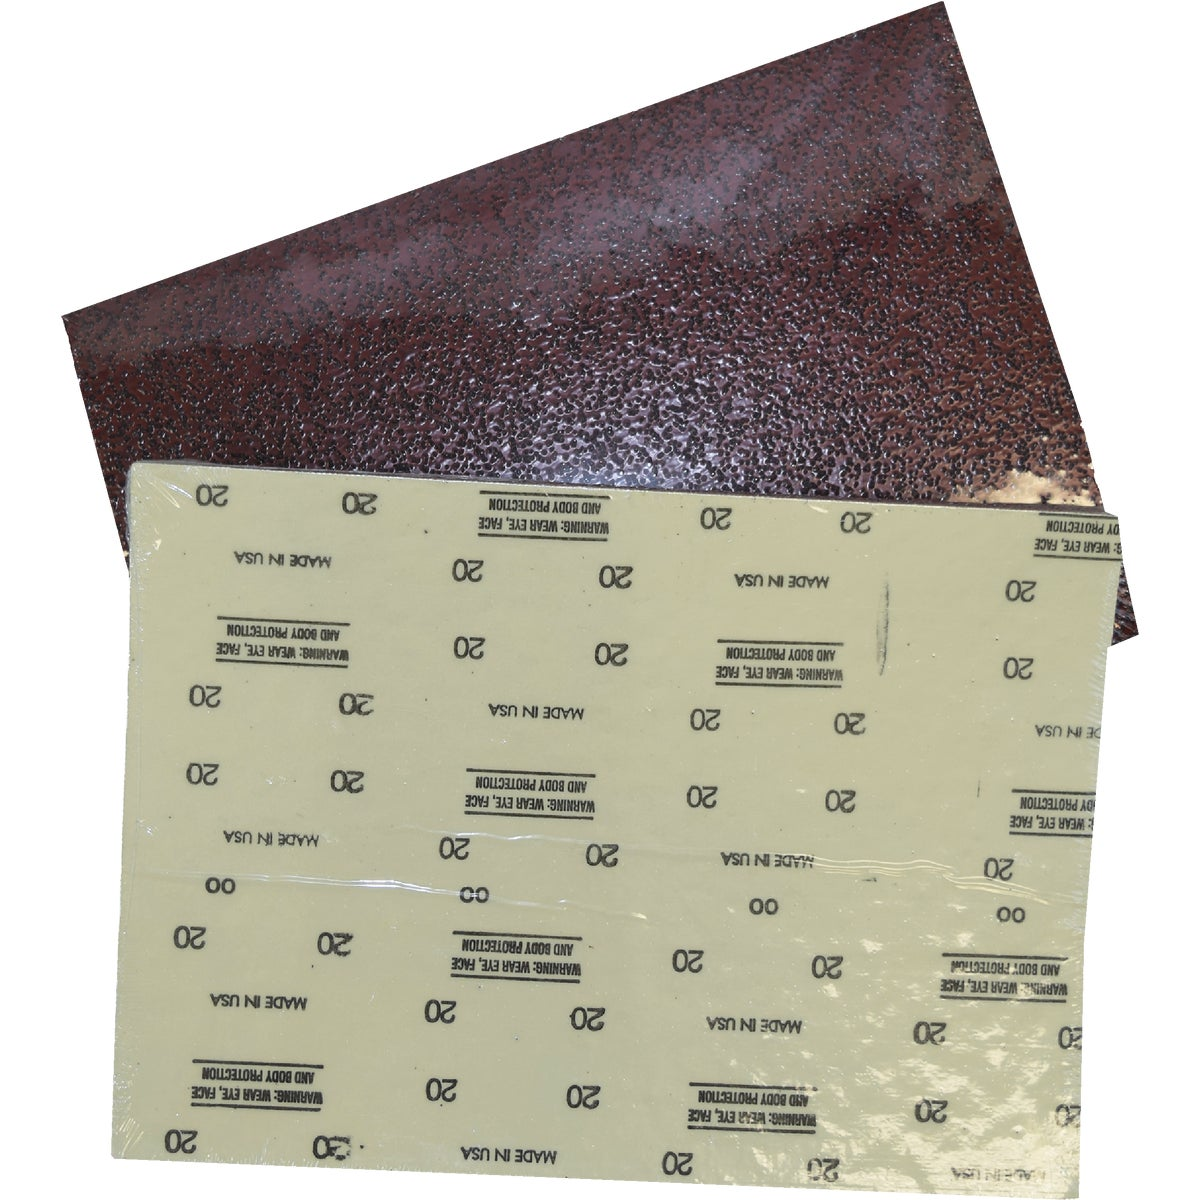 12X18 36G SANDING SHEET - 206-834036 by Virginia Abrasives